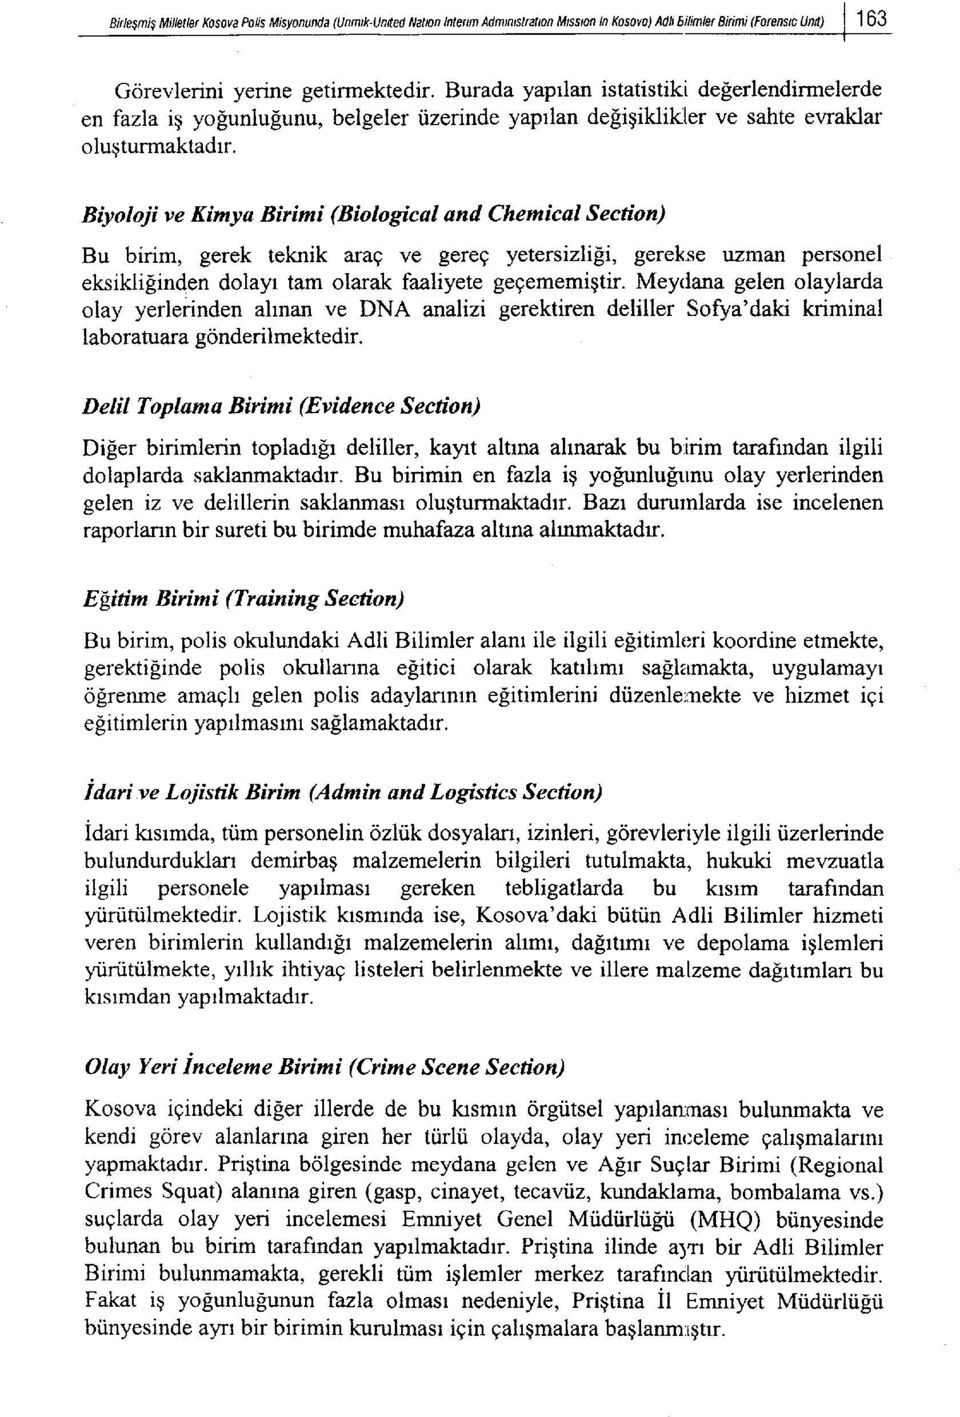 Biyoloji ve Kimya Birimi (Biological and Chemical Section) Bu birim, gerek teknik arag ve gereg yetersizlisi, gerekse uzman personel eksiklifinden dolayr tam olarak faaliyete gegememigtir.